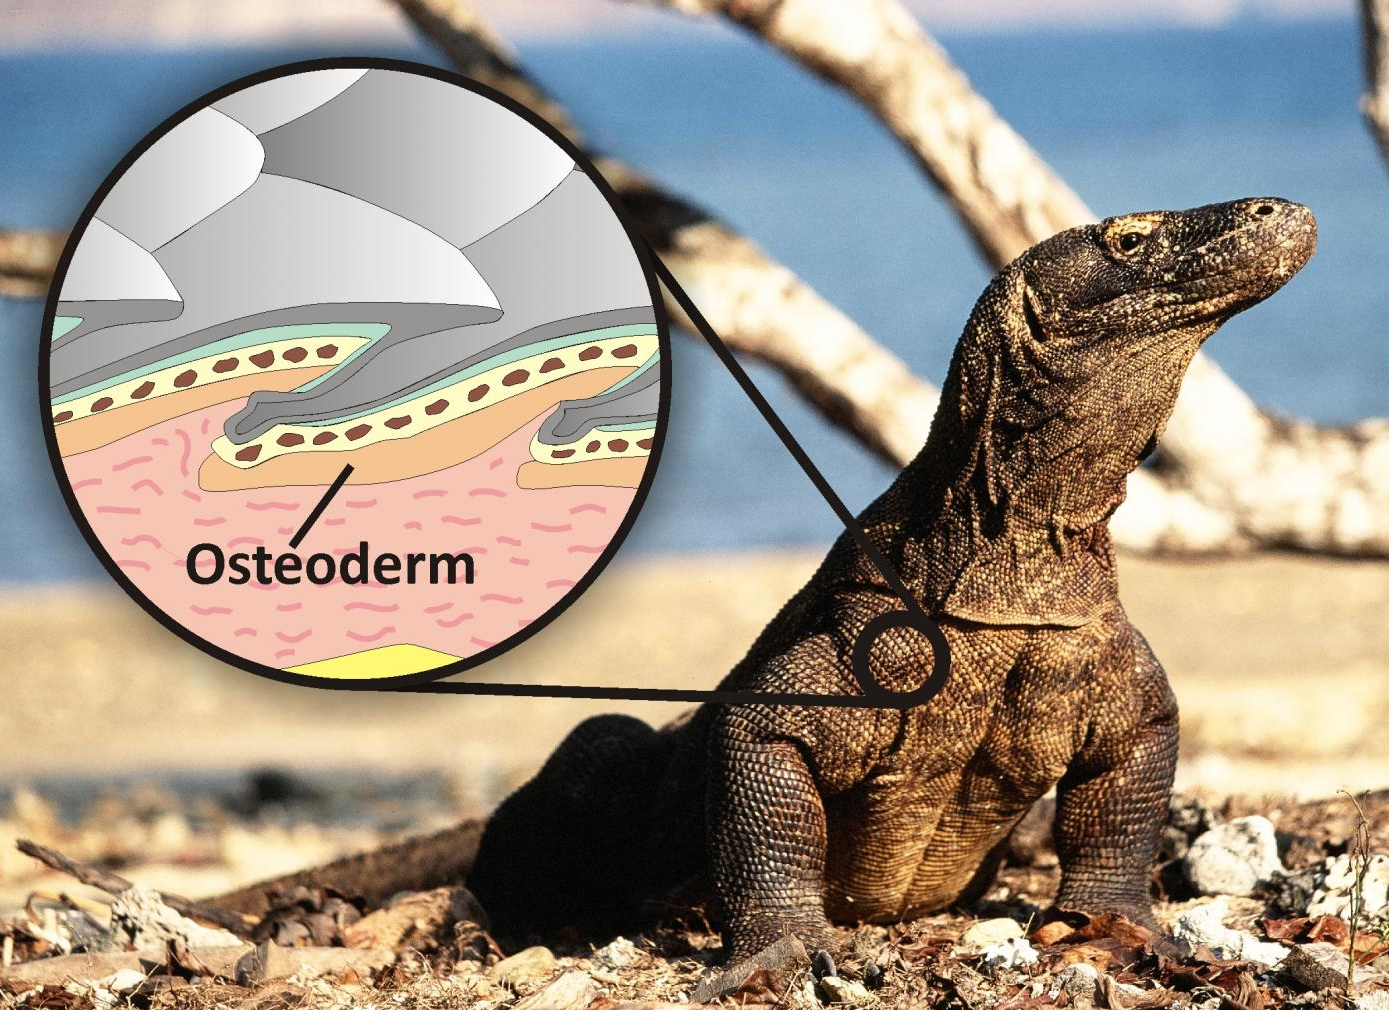 The living Komodo dragon and illustration showing how the osteoderm bone reinforces the scales and acts like body armor. CREDIT Photo of the Komodo dragon by Bryan Fry, inset by Gilbert Price